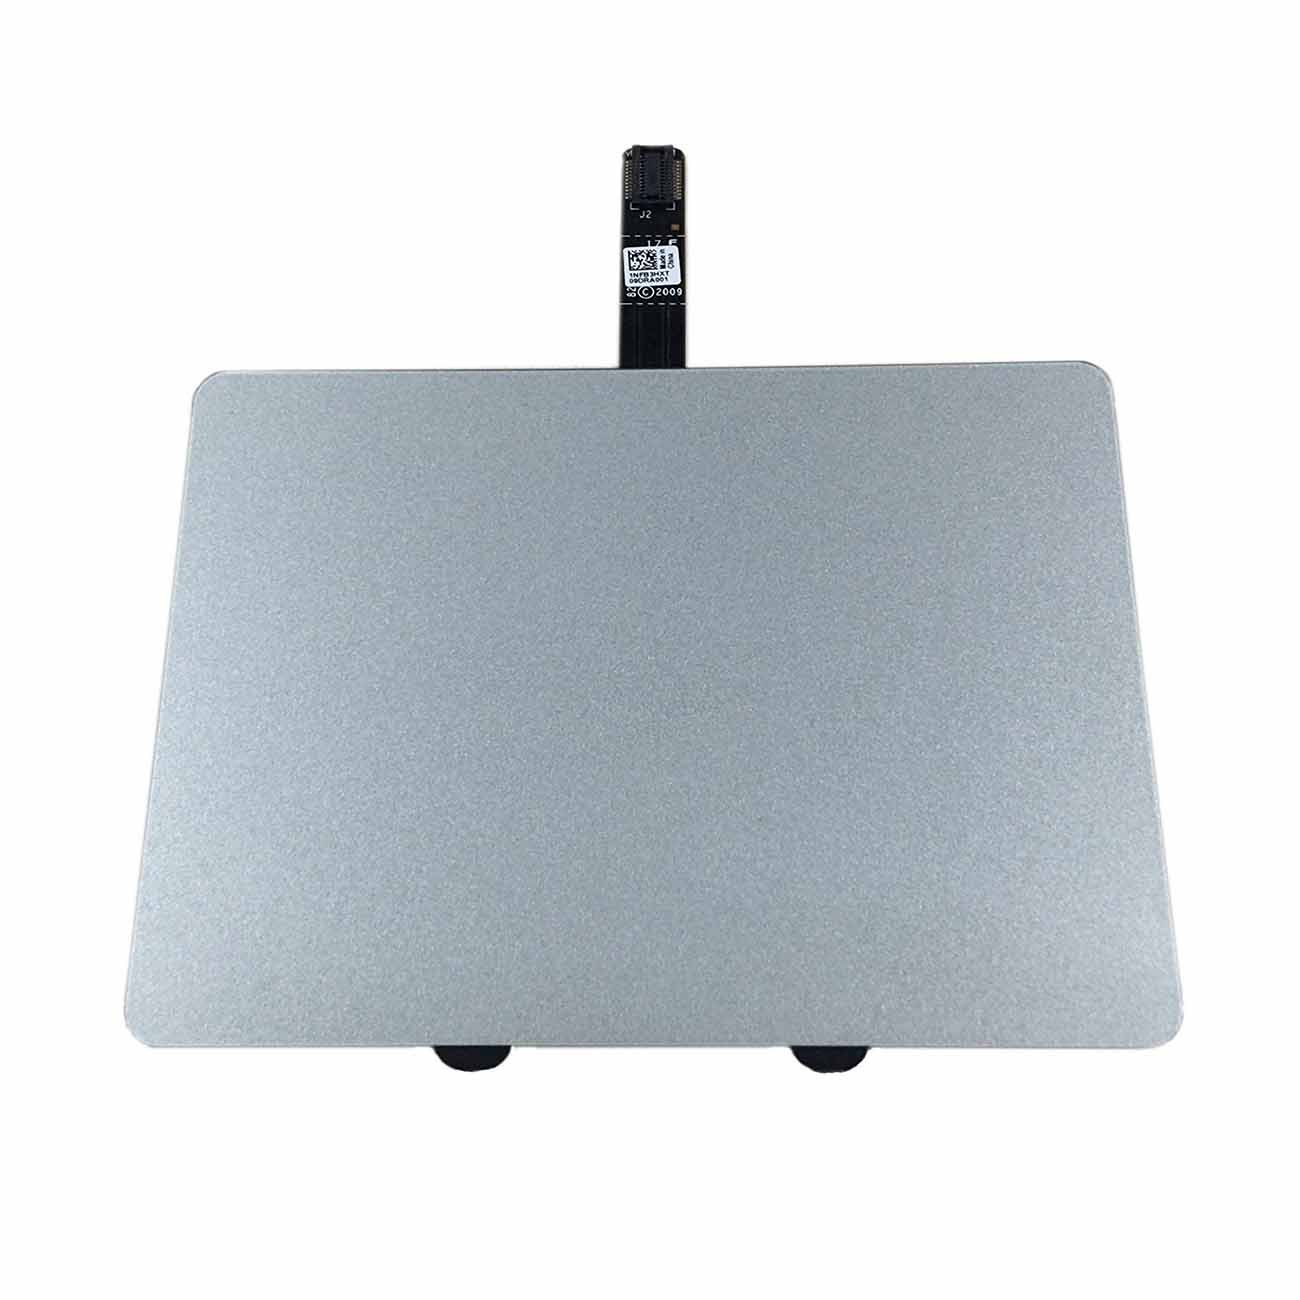 "Willhom (922-9063, 922-9525, 922-9773) Replacement Kit Trackpad with Cable for MacBook Pro 13"" A1278 (2009, 2010, 2011, 2012)"